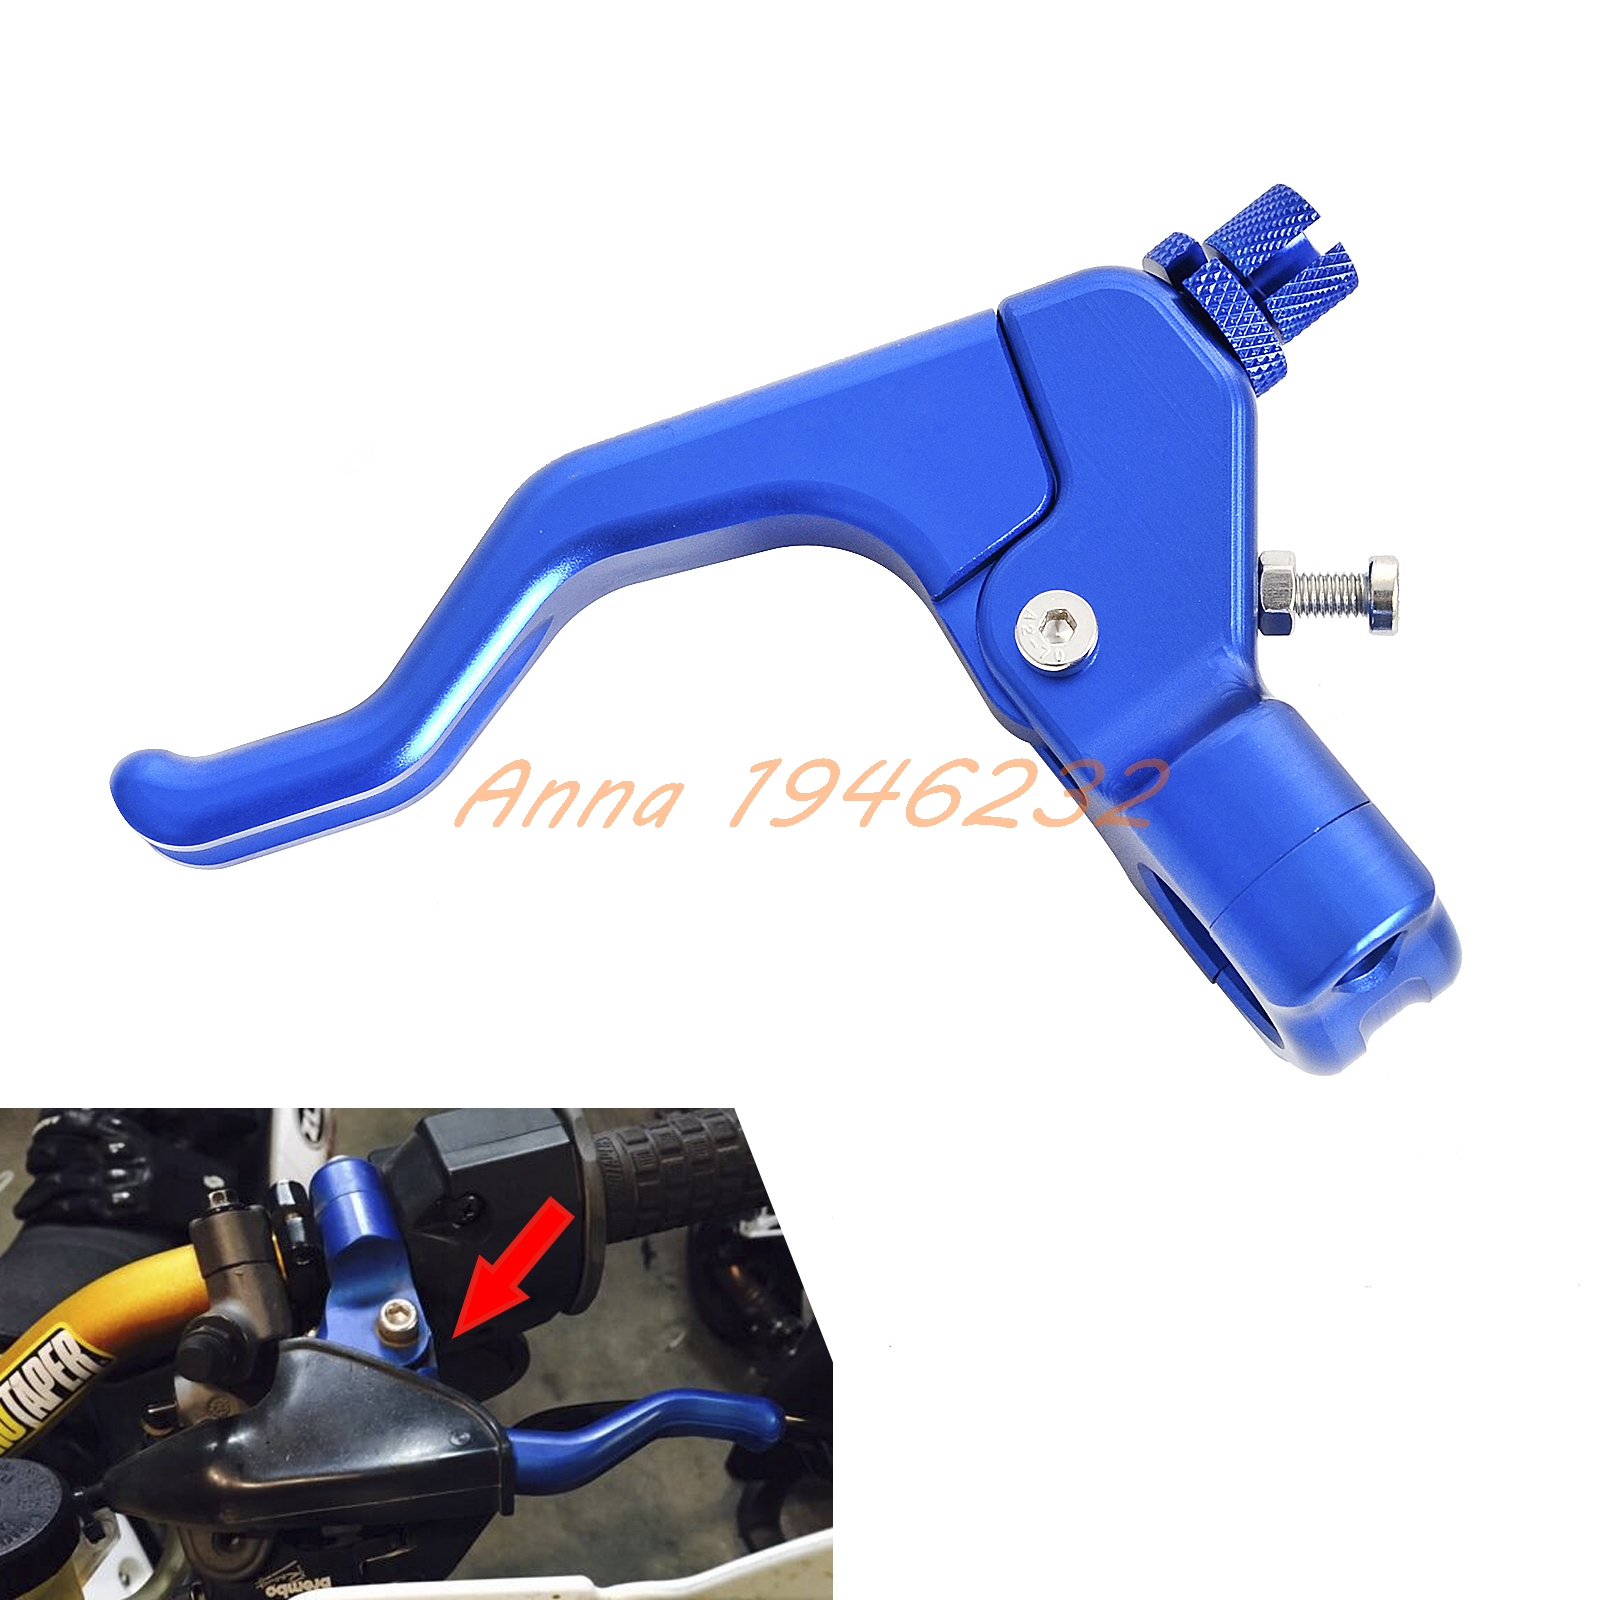 CNC Performance Stunt Clutch Lever /Clutch Perch assembly For Honda CR CRF Kawasaki KX KLX Suzuki RM DRZ Yamaha YZ WR for 22mm 7 8 handlebar motorcycle cnc t6061 aluminum performance stunt clutch lever assembly black blue